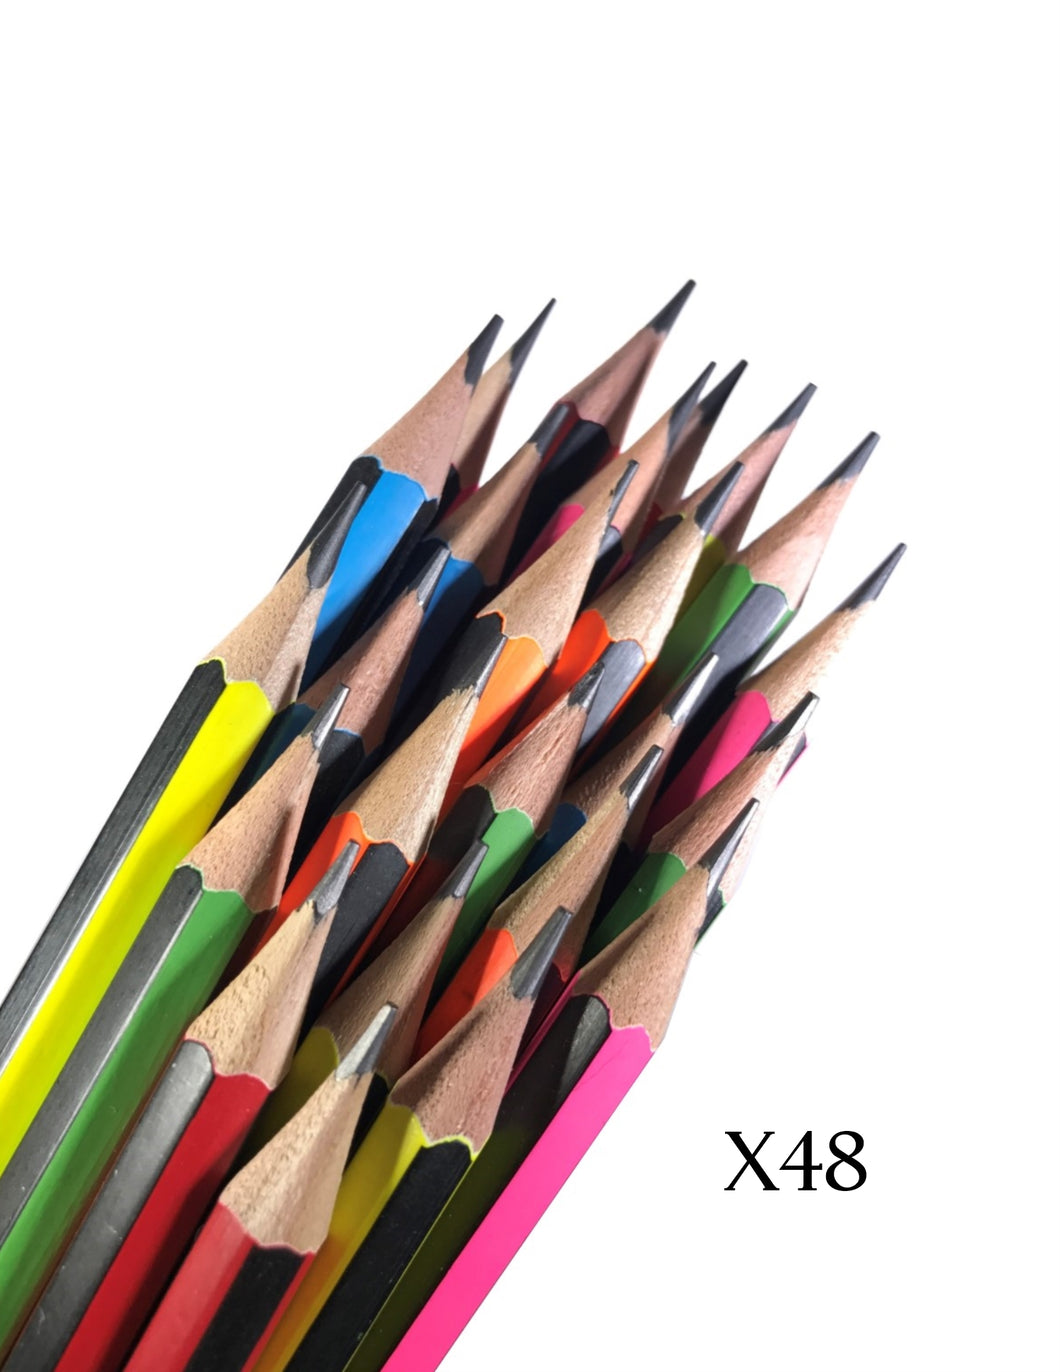 Yalong HB Lead Pencils | 12 Pencils (12 Pack)